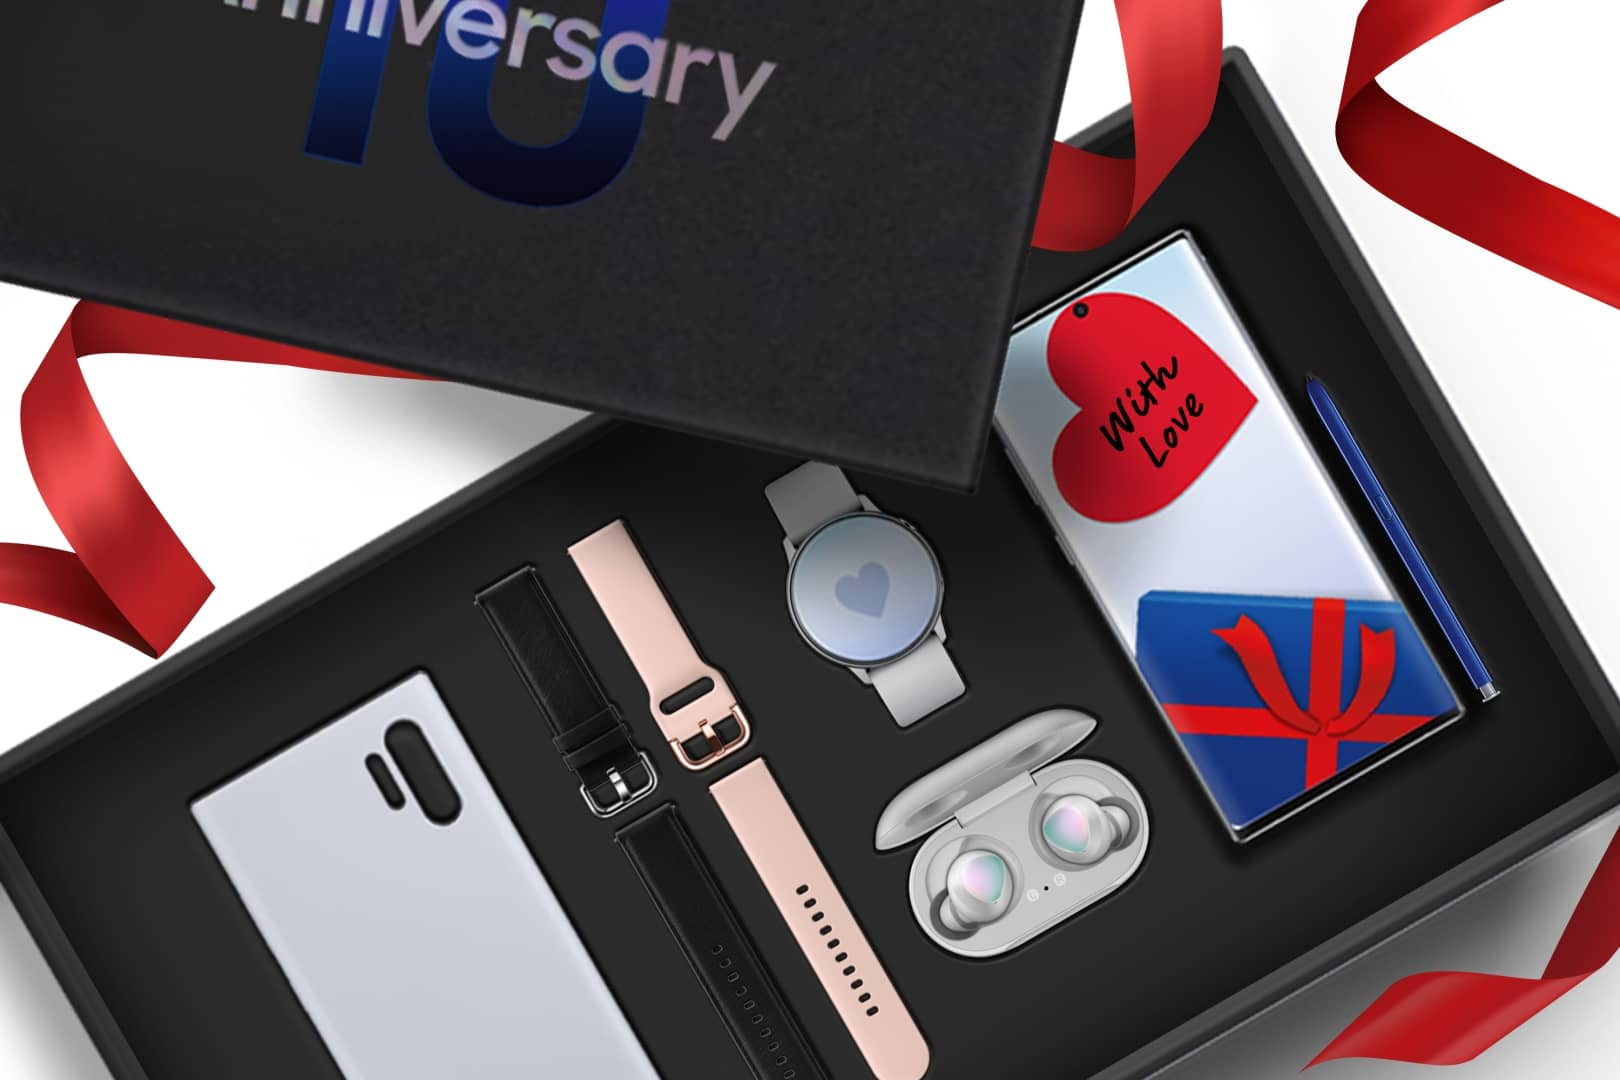 Samsung 10th Annivesary Premium Package